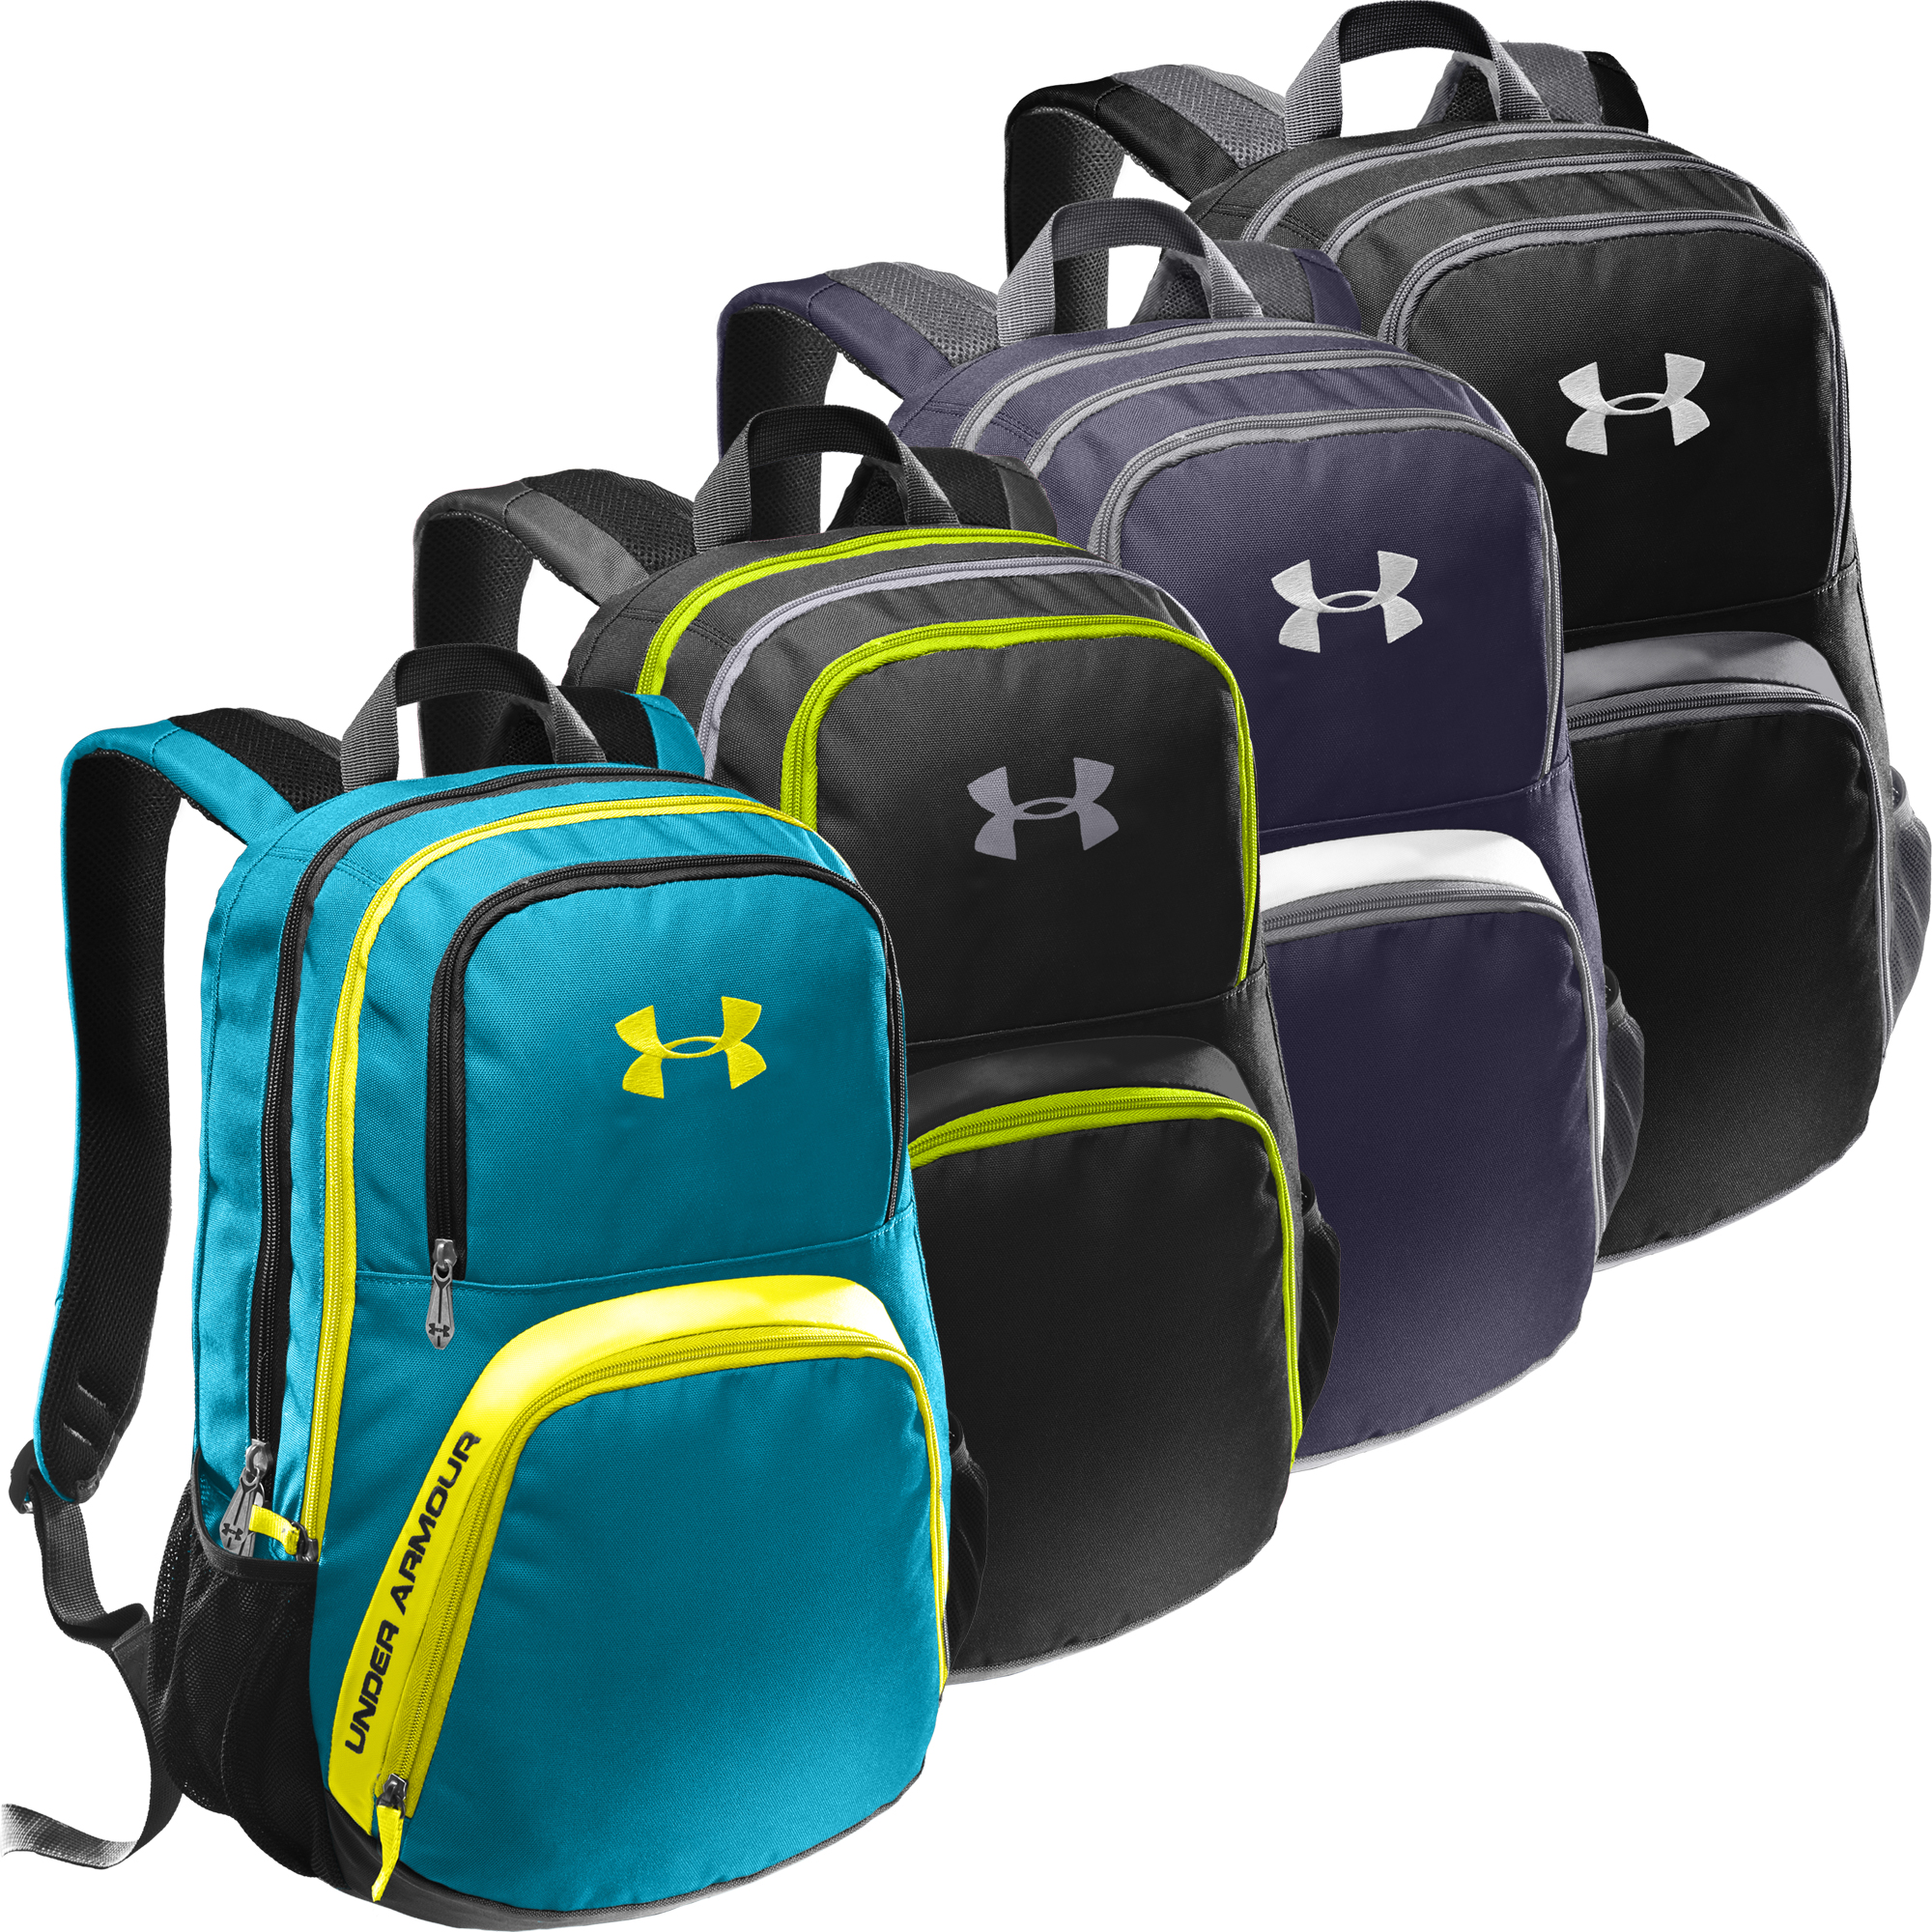 cheap under armor backpacks cheap   OFF50% The Largest Catalog Discounts 0bfe11beba